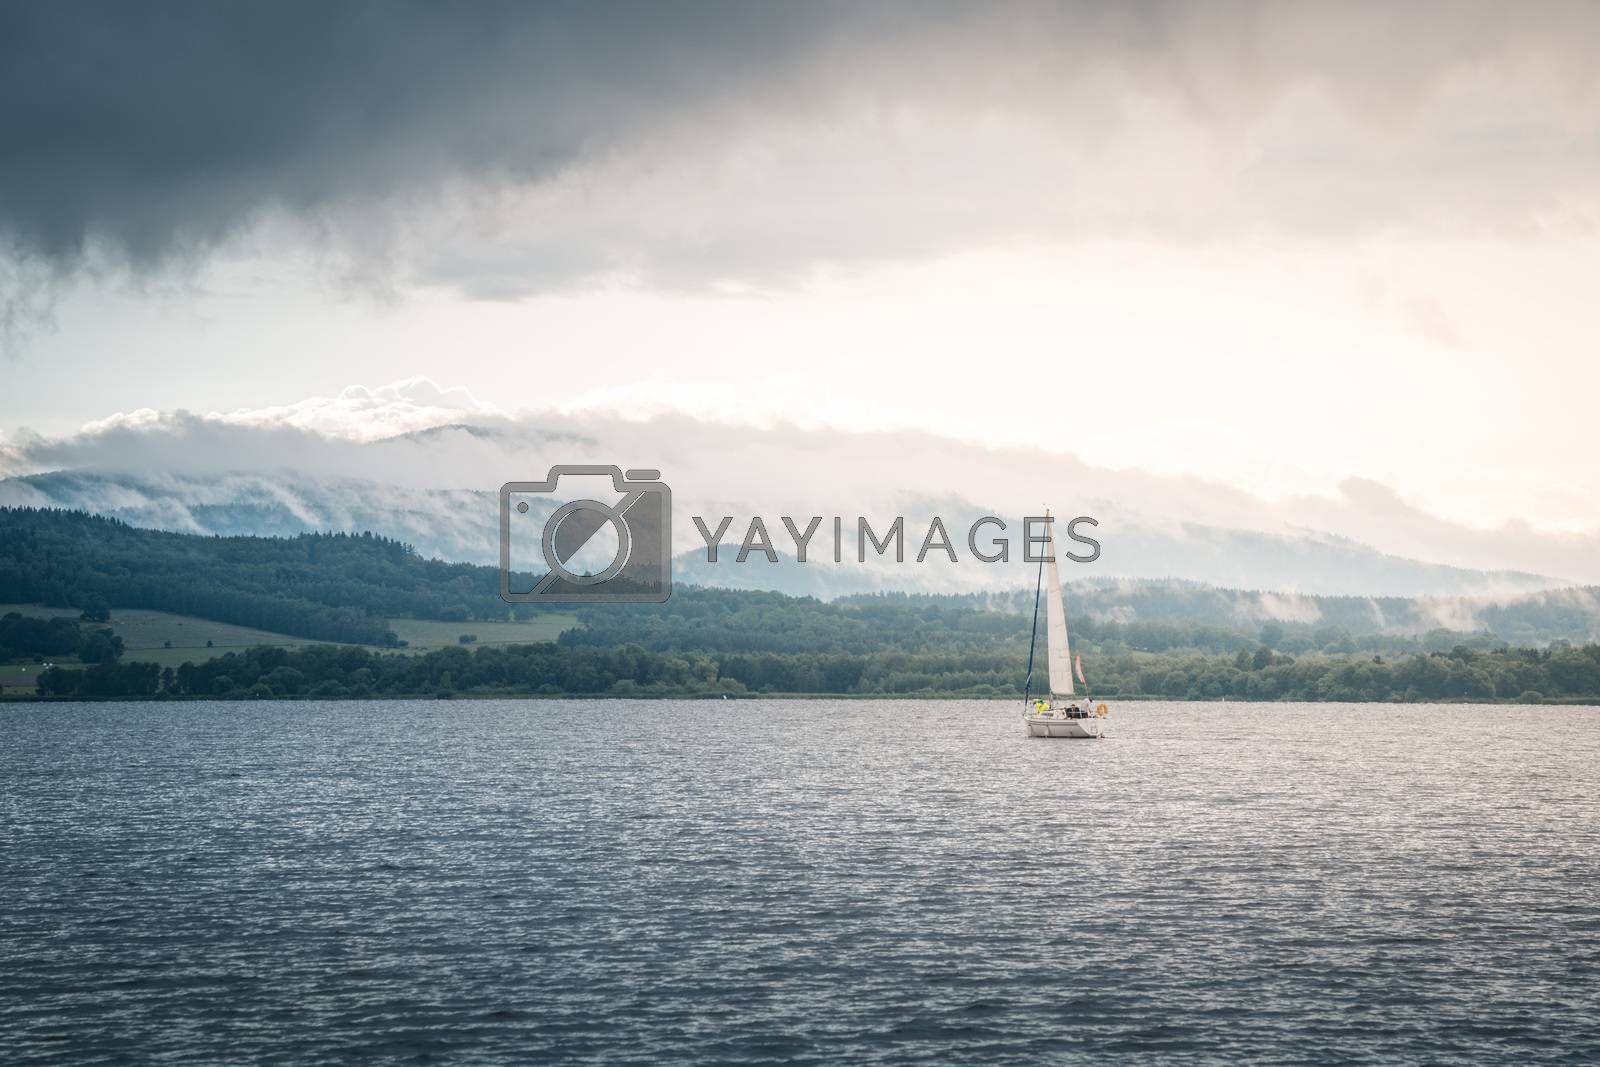 Royalty free image of Sailing boat floats on the lake with stormy clouds sky. Autumn sailboat ship water sport scene from Lipno, Czech republic, Sumava. by petrsvoboda91